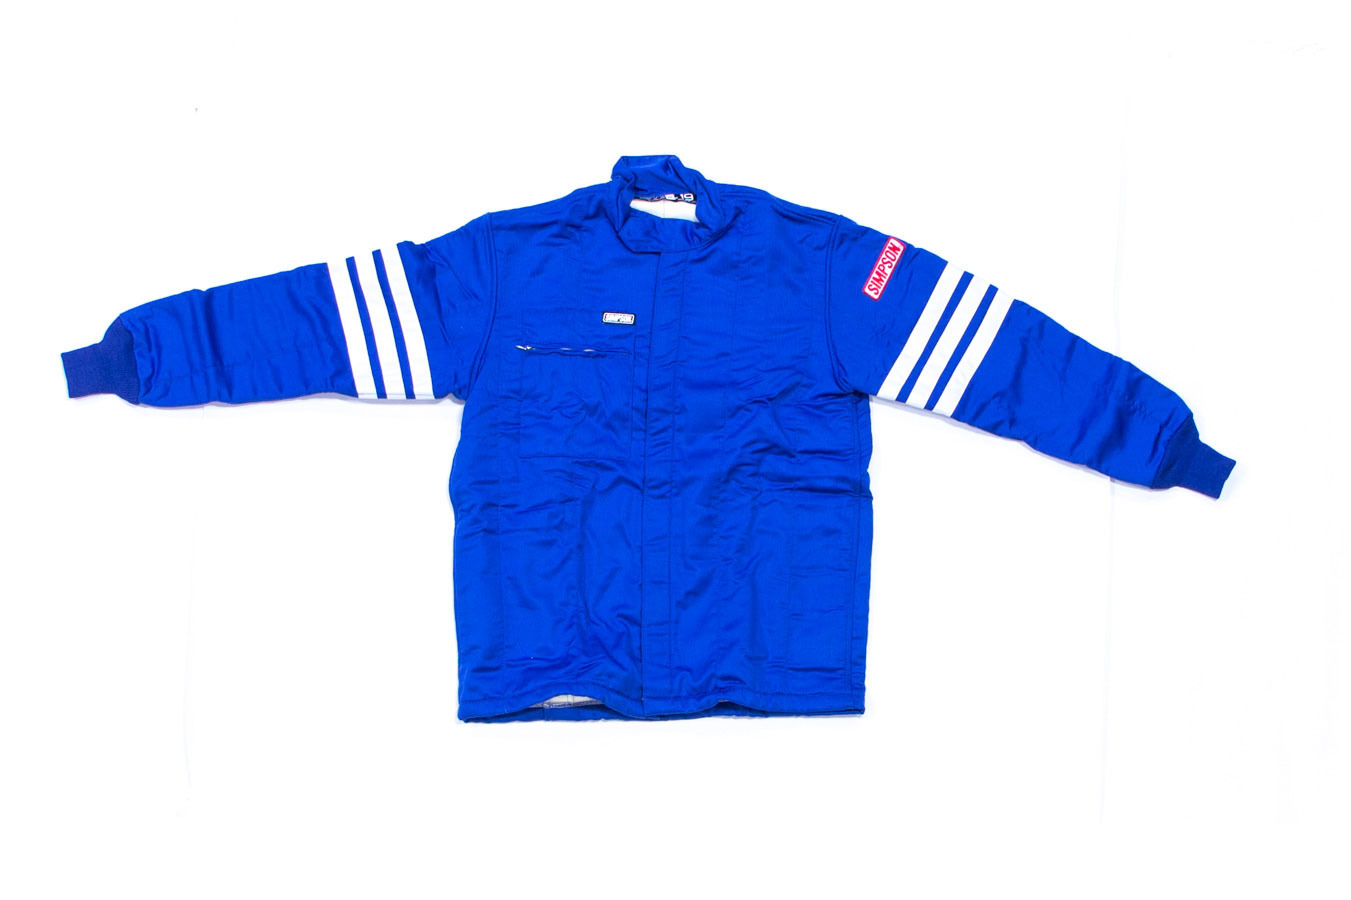 Simpson 0404412 Jacket, Driving, SFI 3.2A/5, Double Layer, Nomex, Blue / White Stripes, X-Large, Each